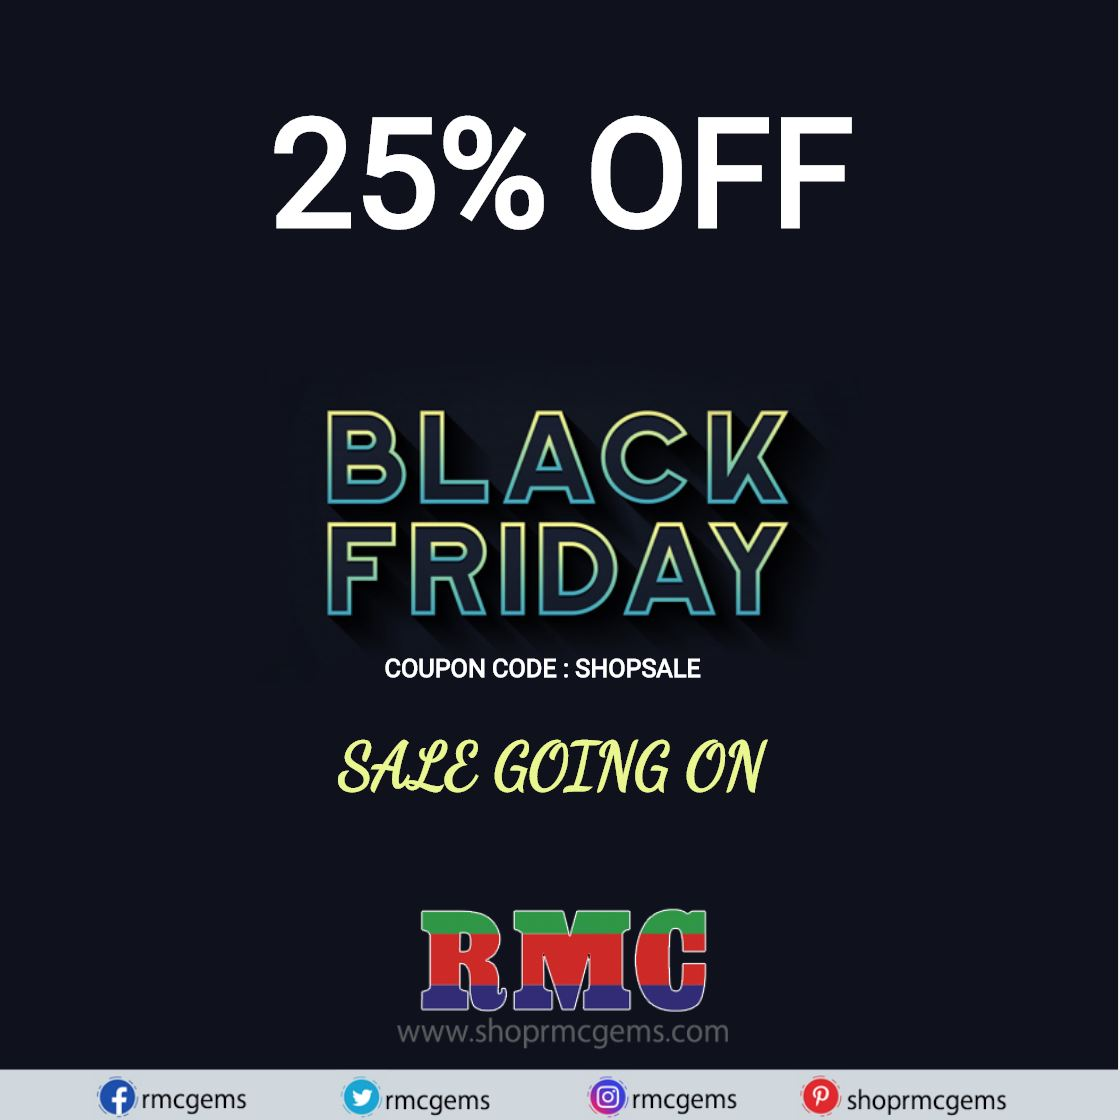 Amazing Black Friday 2019 deals available now